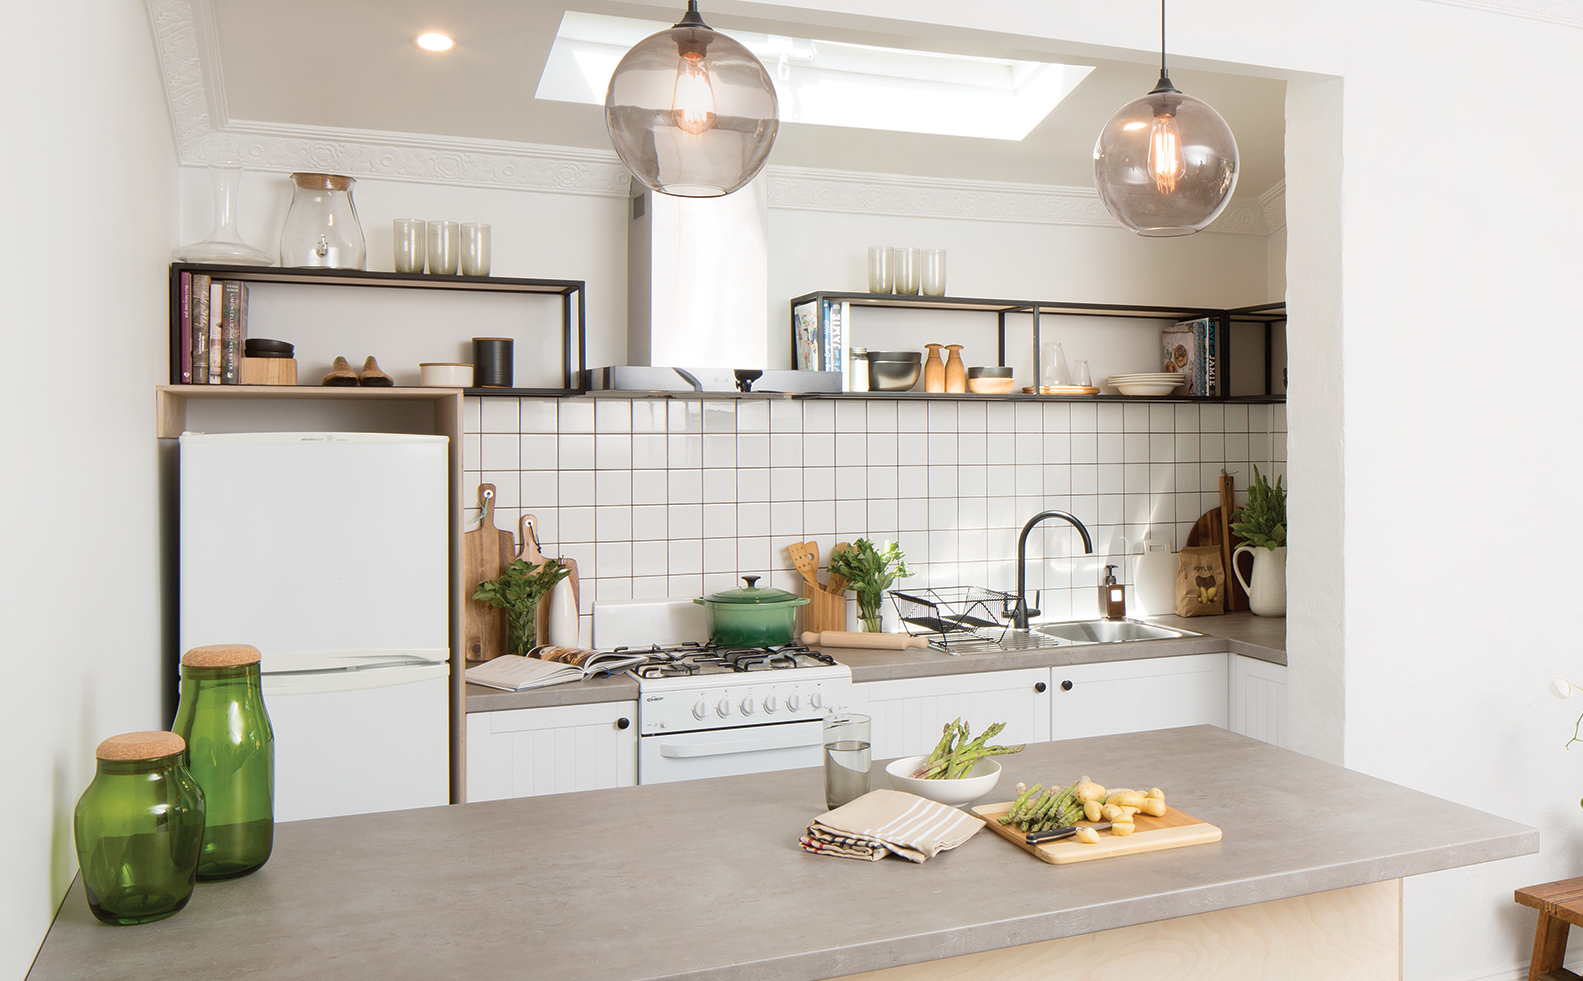 Kitchen Inspiration Gallery Bunnings Benchtop, tiles